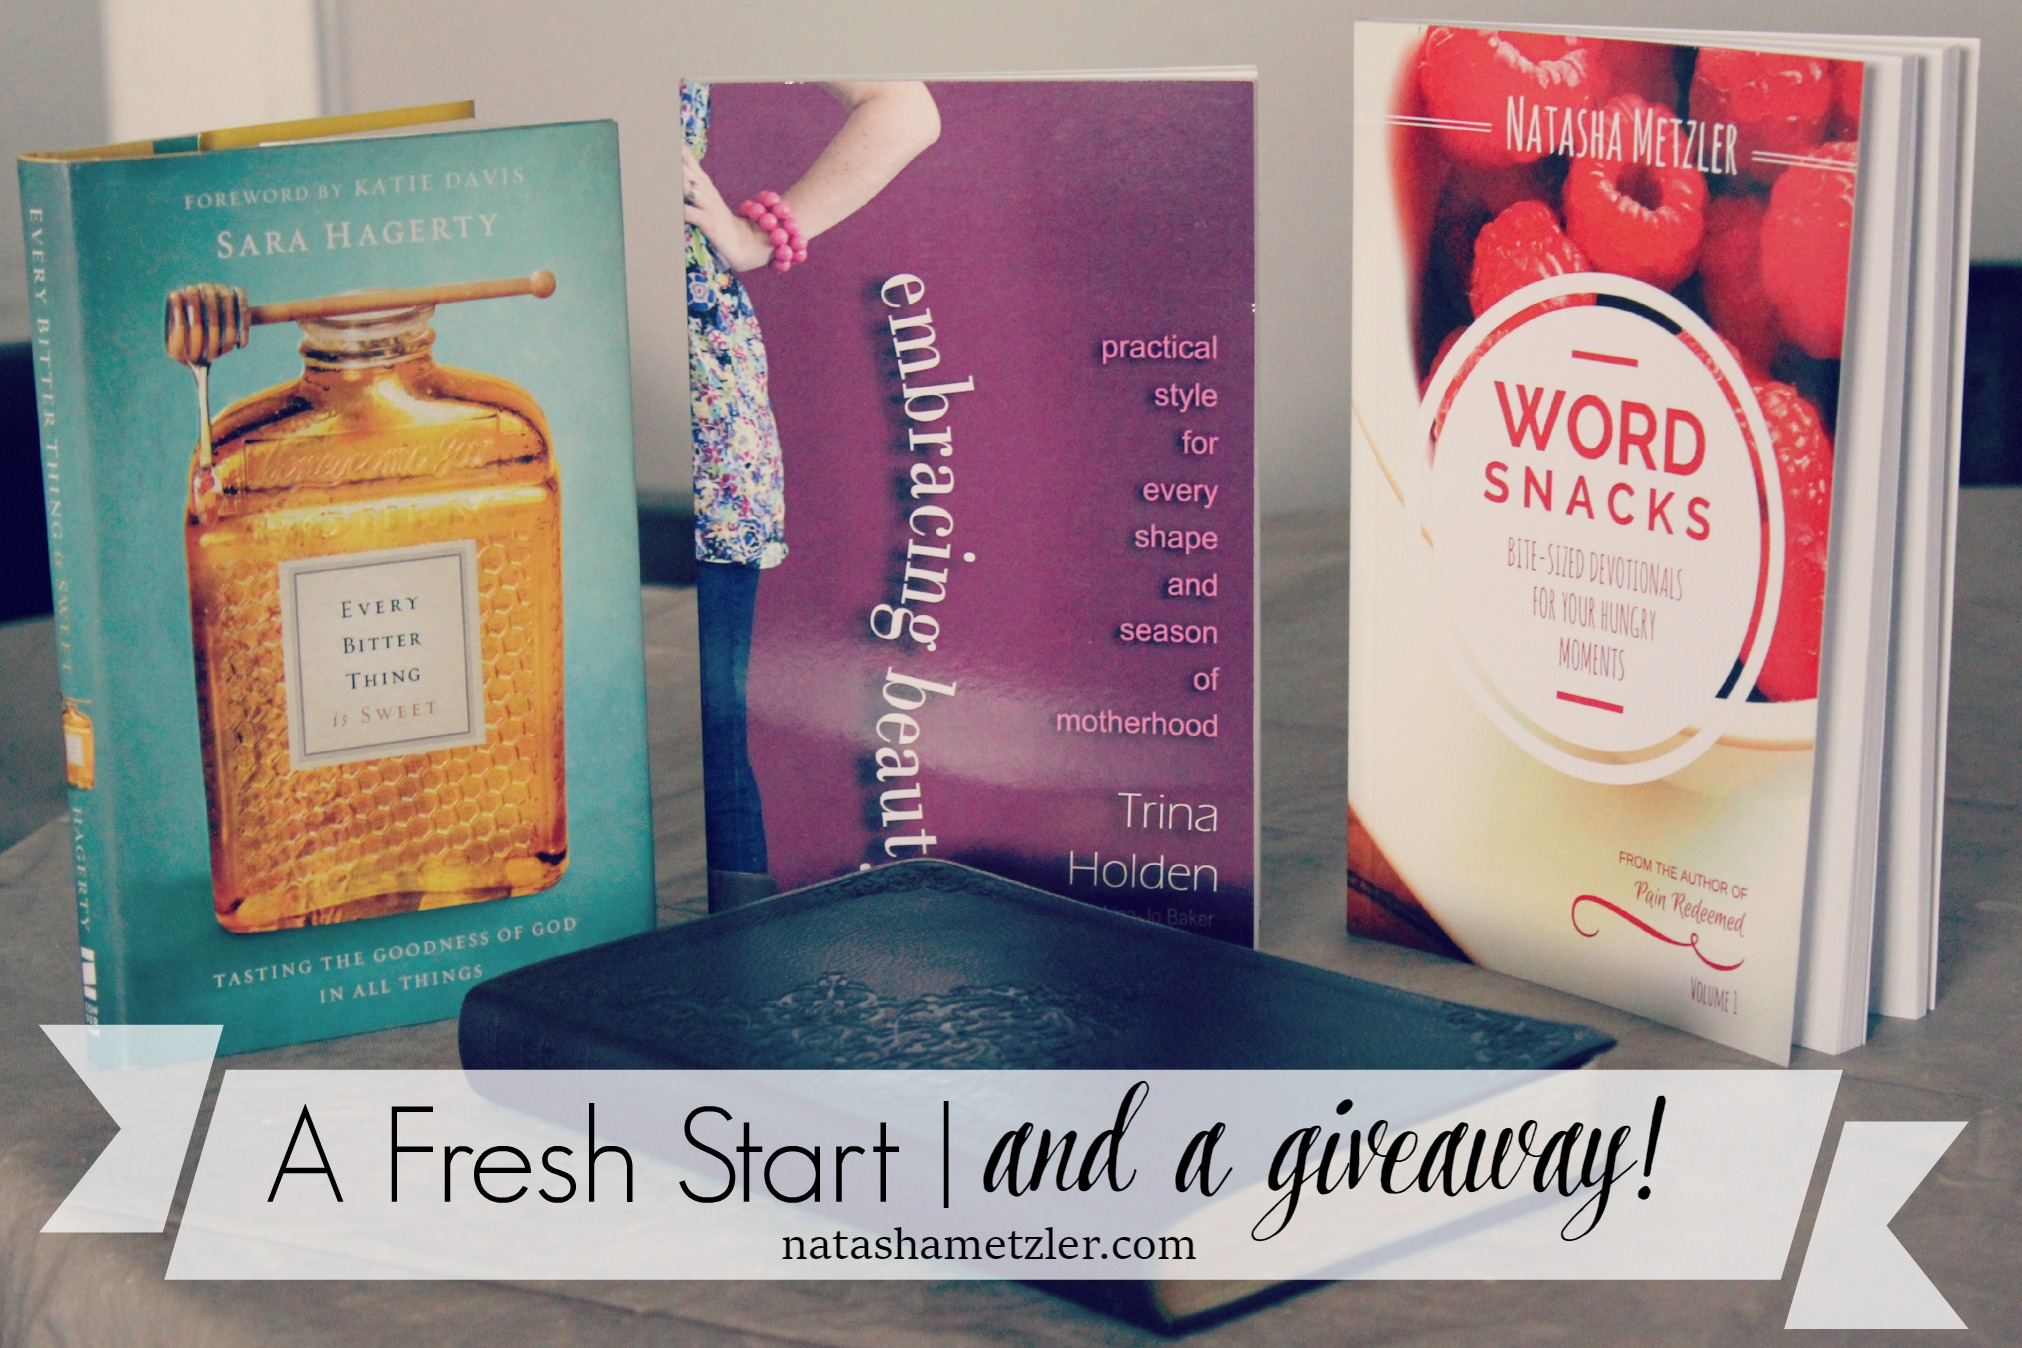 A fresh start  and a giveaway!